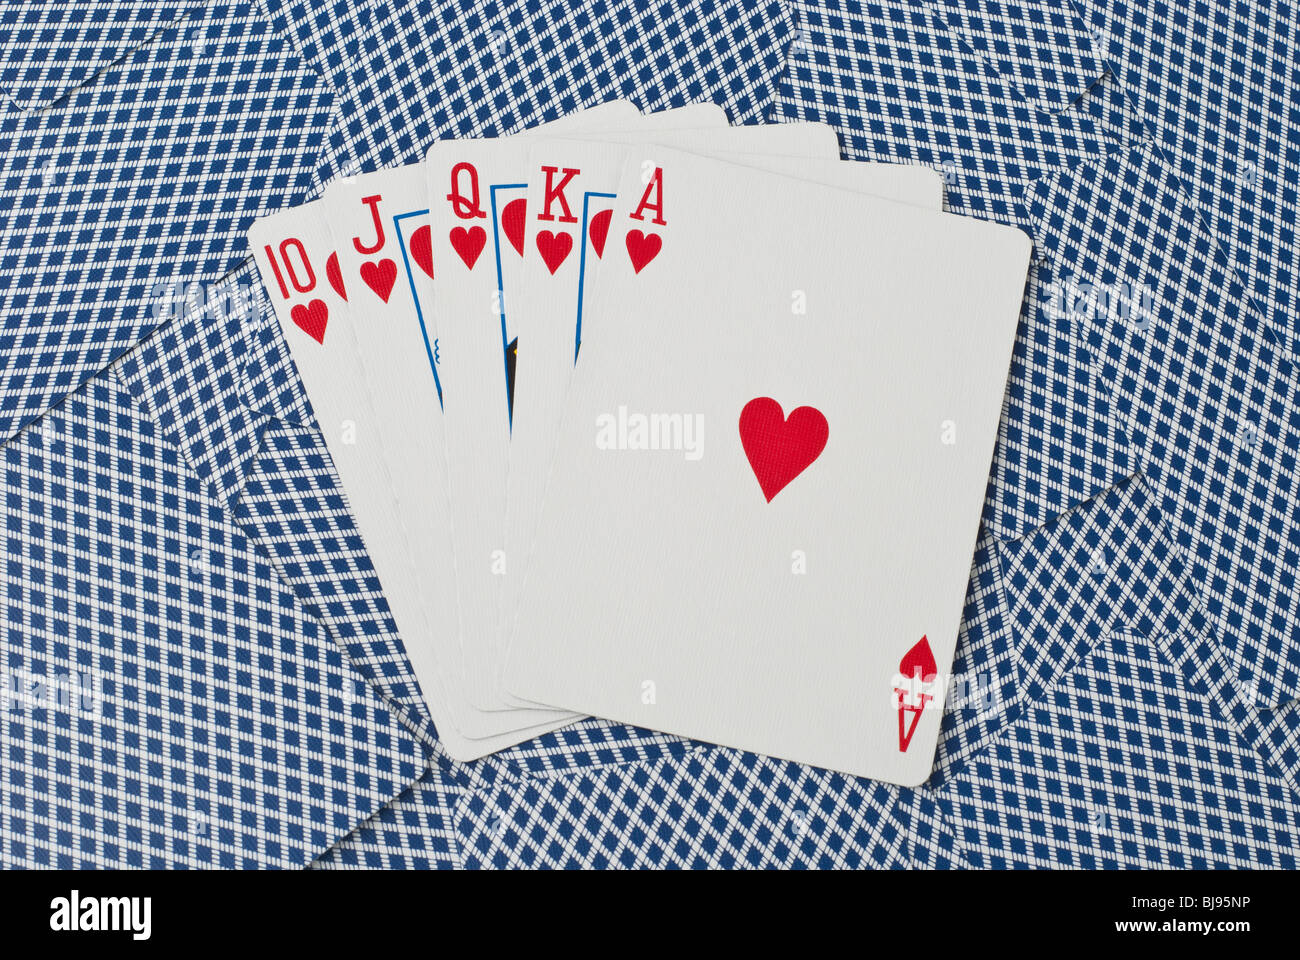 Five cards, showing a royal flush with hearts from ten to ace, on a background of backsides of blue playing cards - Stock Image